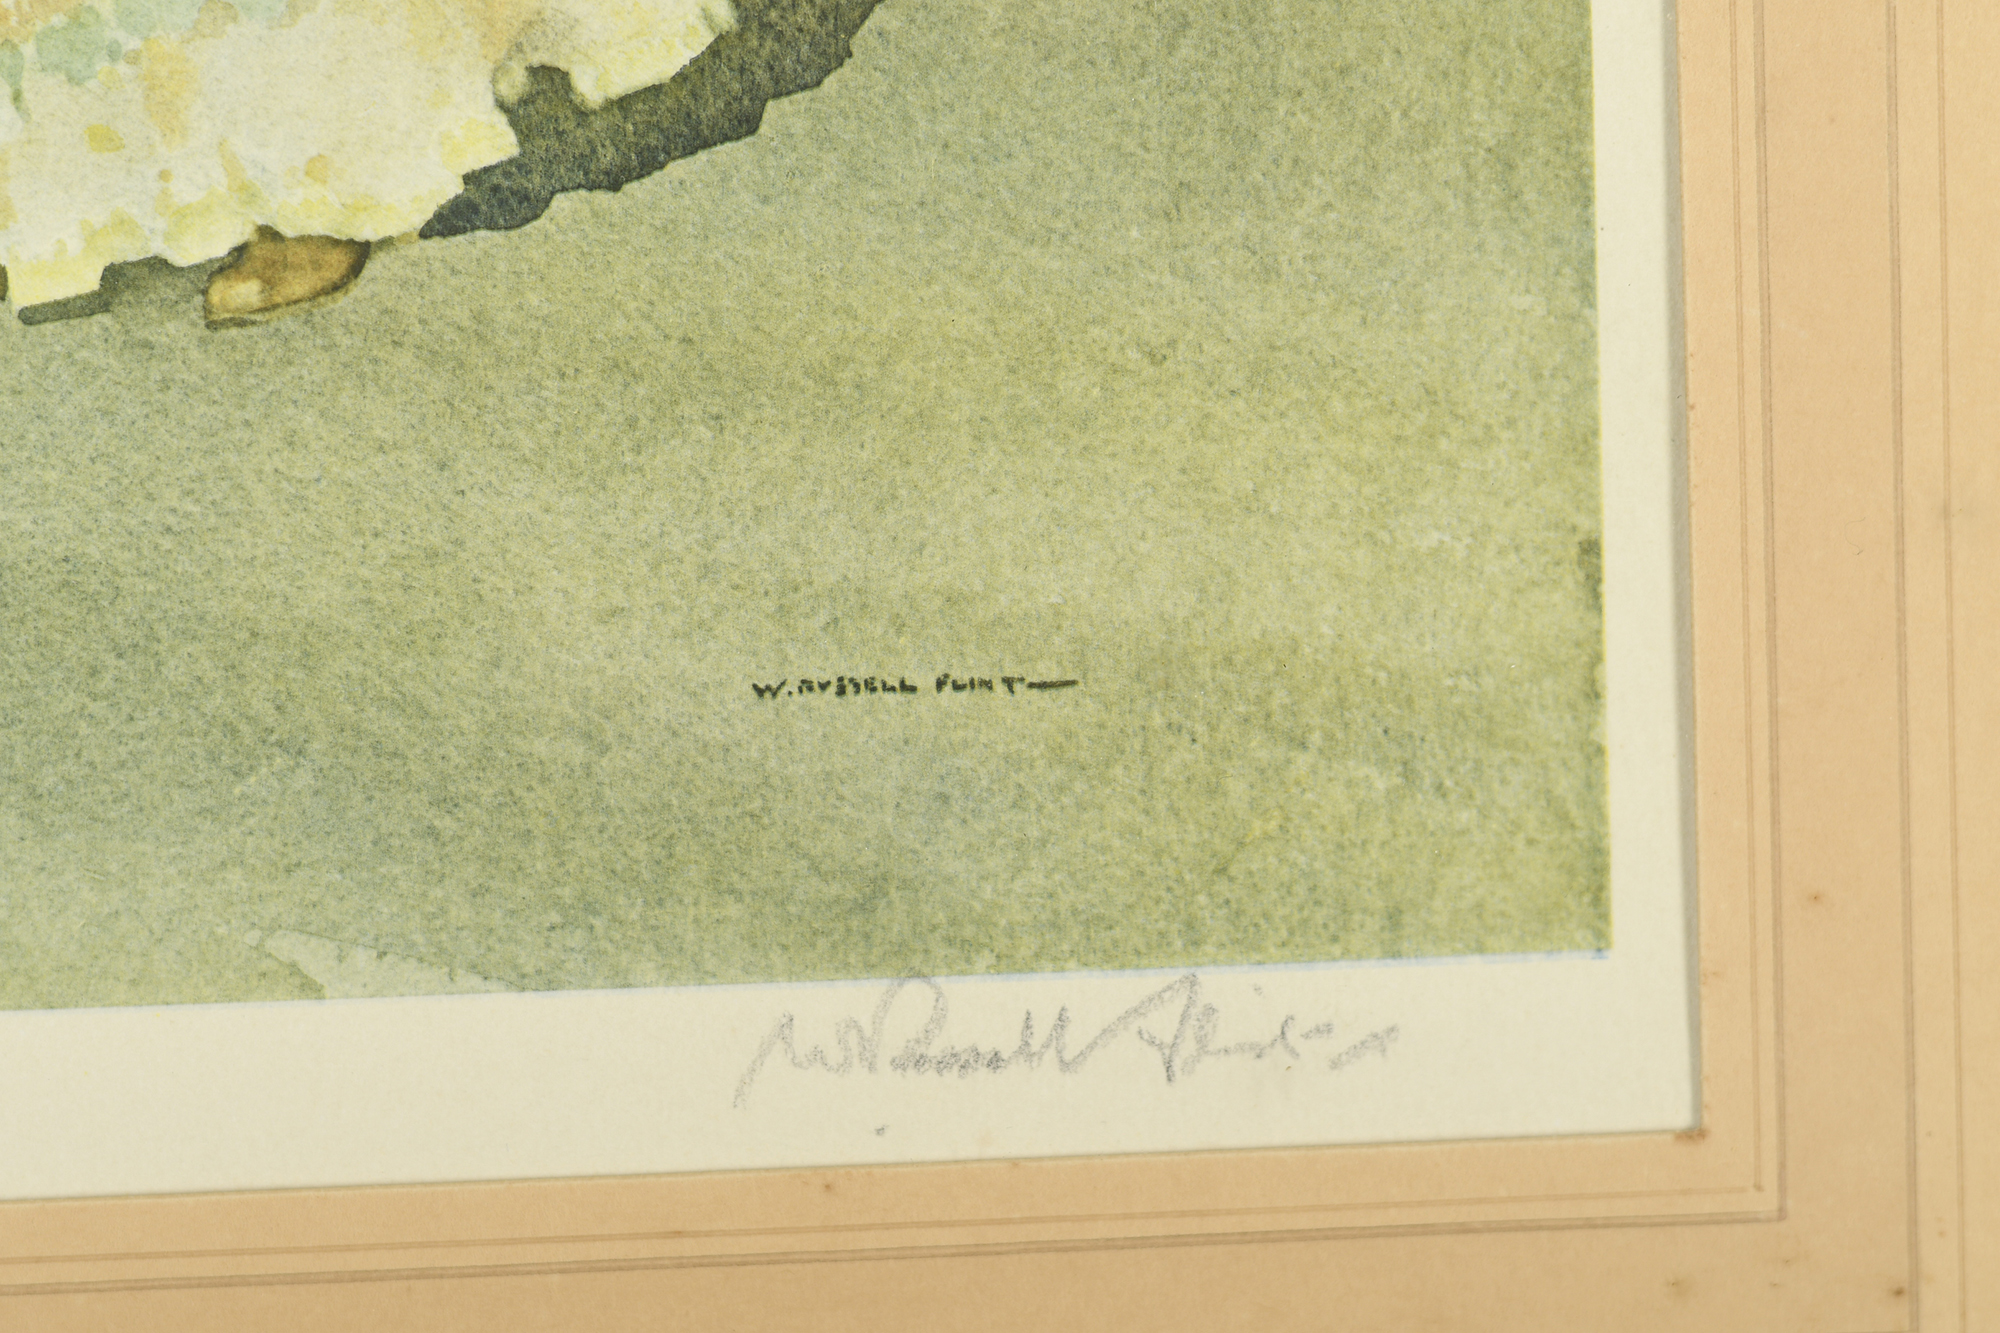 """Signed Limited Edition by Sir William Russell Flint """"Unwelcome Observers"""" - Image 2 of 8"""